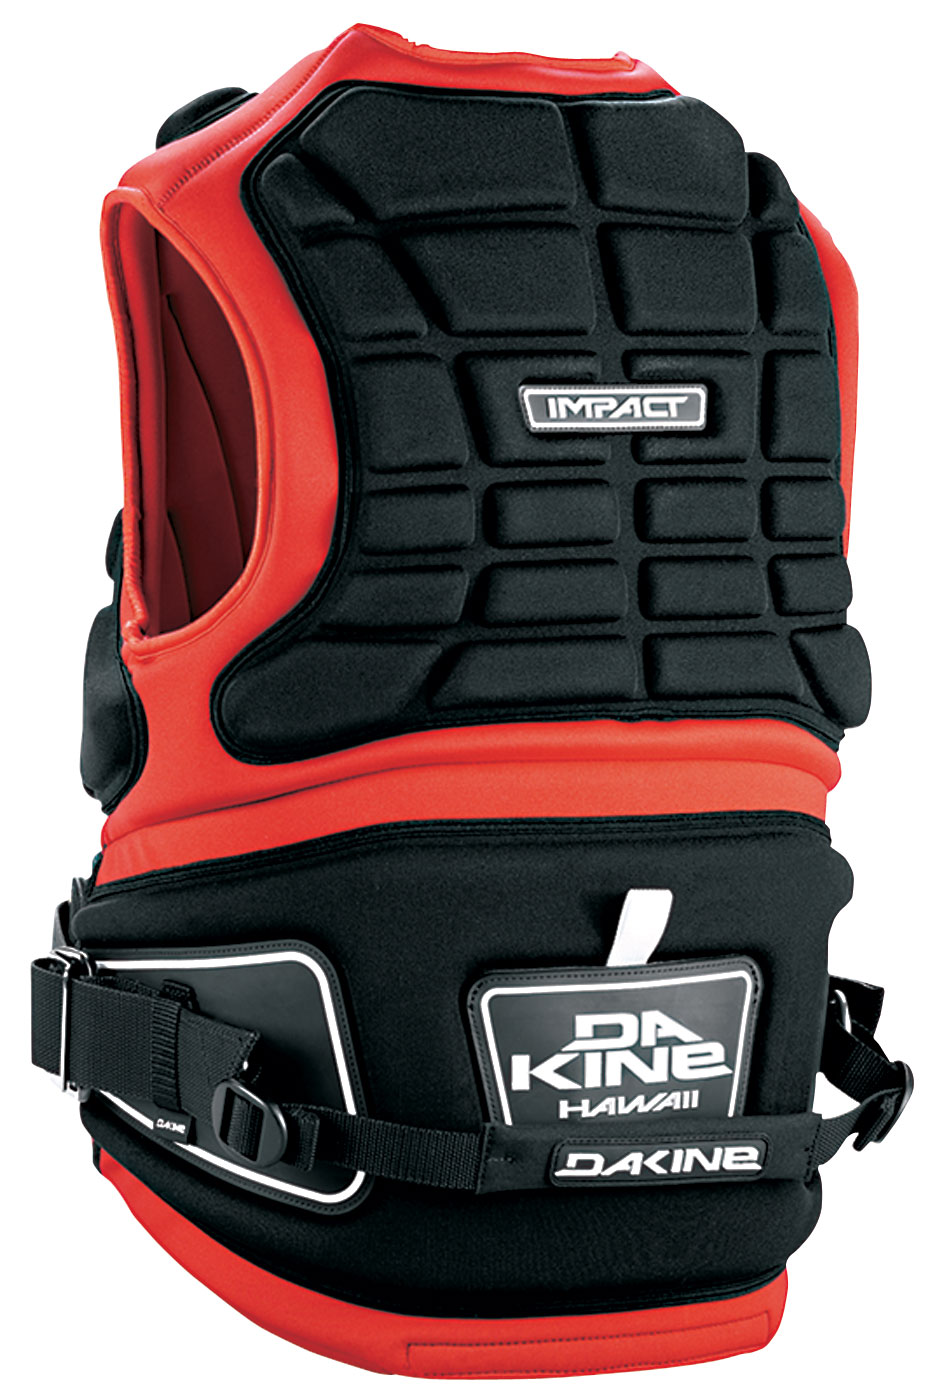 Surf The support and comfort of a waist harness, integrated with the protection of a flexible padded vest. An insane amount of flexible shaping panels, make this the most comfortable impact harness ever. - $138.95